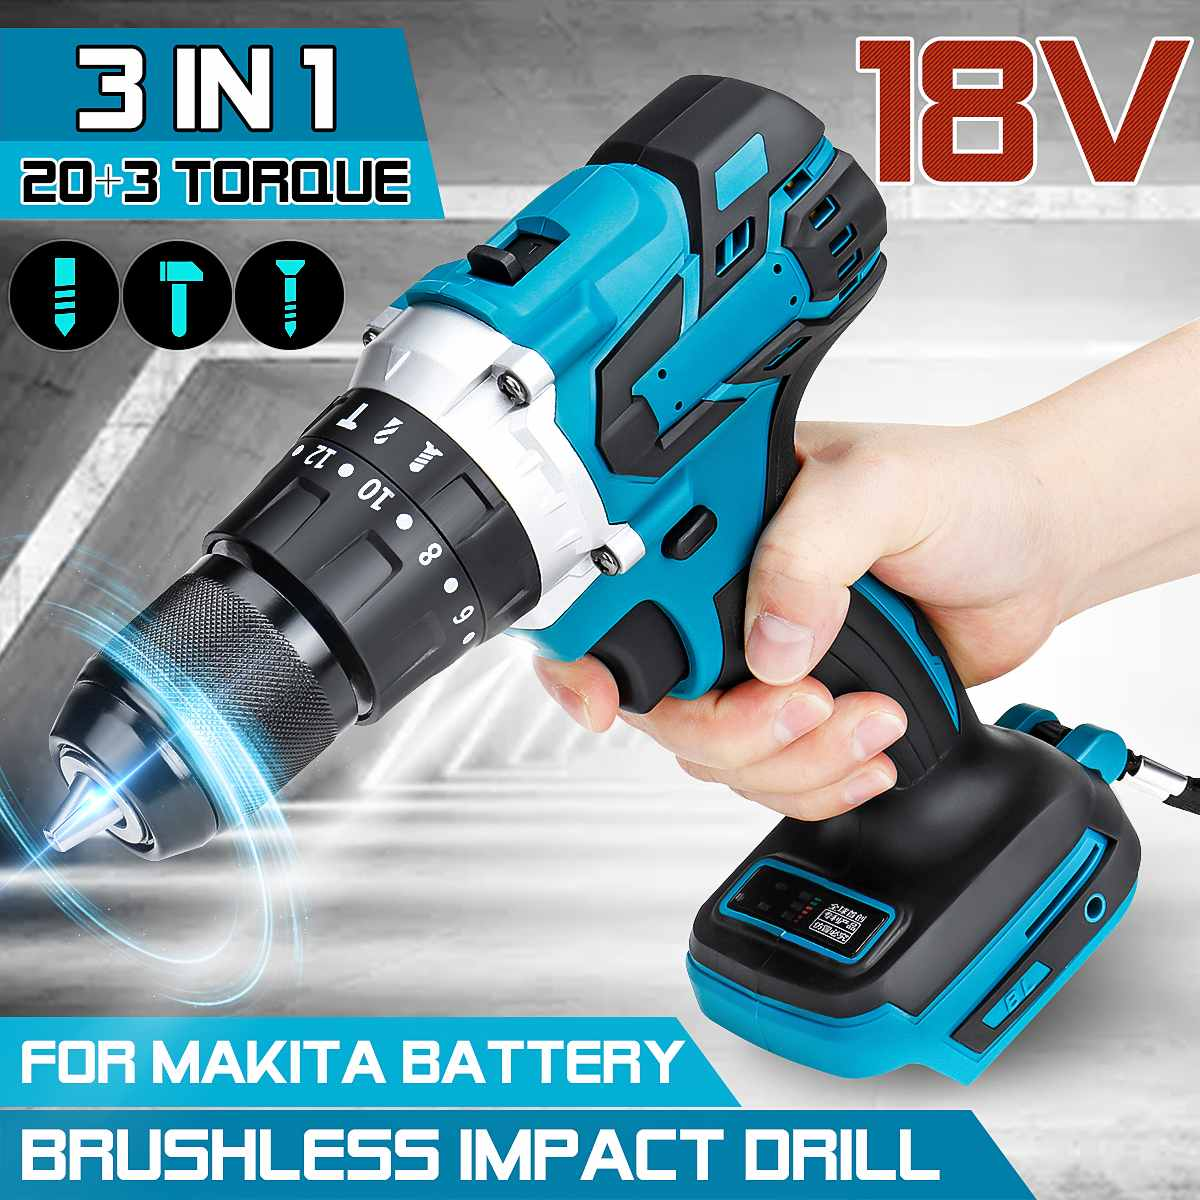 3 in 1 Brushless Electric Hammer Drill Electric Screwdriver 13mm 20+3 Torque Cordless Impact Drill for Makita Battery 18V 3 in 1 13mm brushless electric hammer drill electric screwdriver 20 3 torque cordless impact drill for makita 18v battery